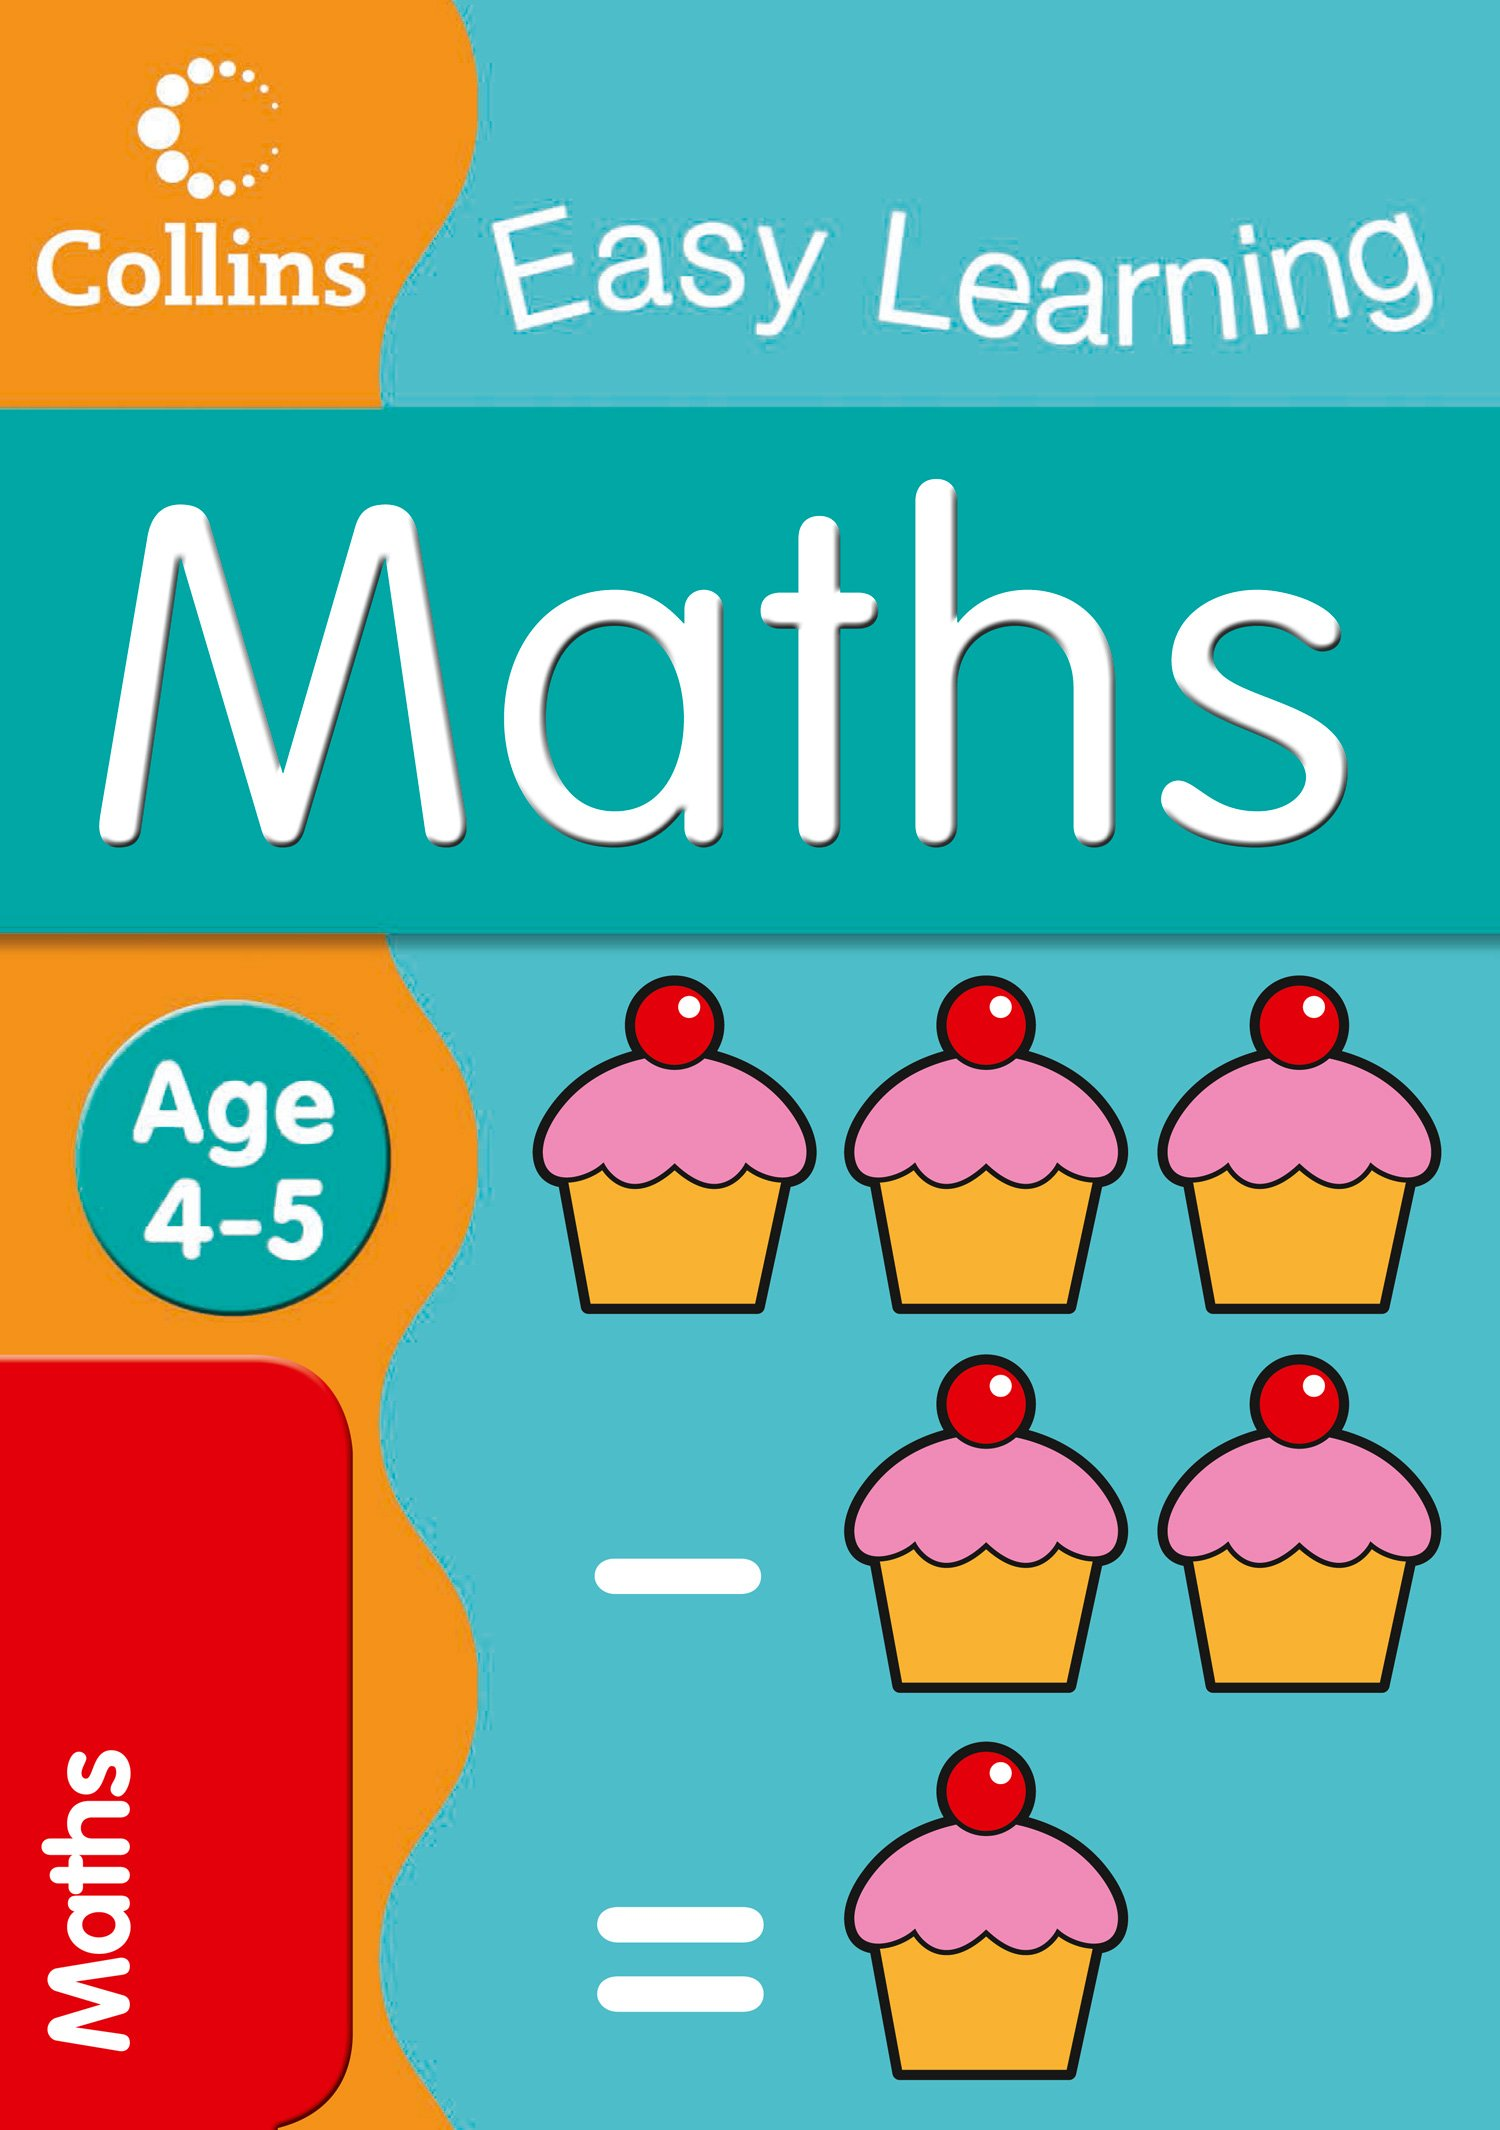 EASY LEARNING MATHS AGE 4-5: Amazon.co.uk: Collins Easy Learning ...